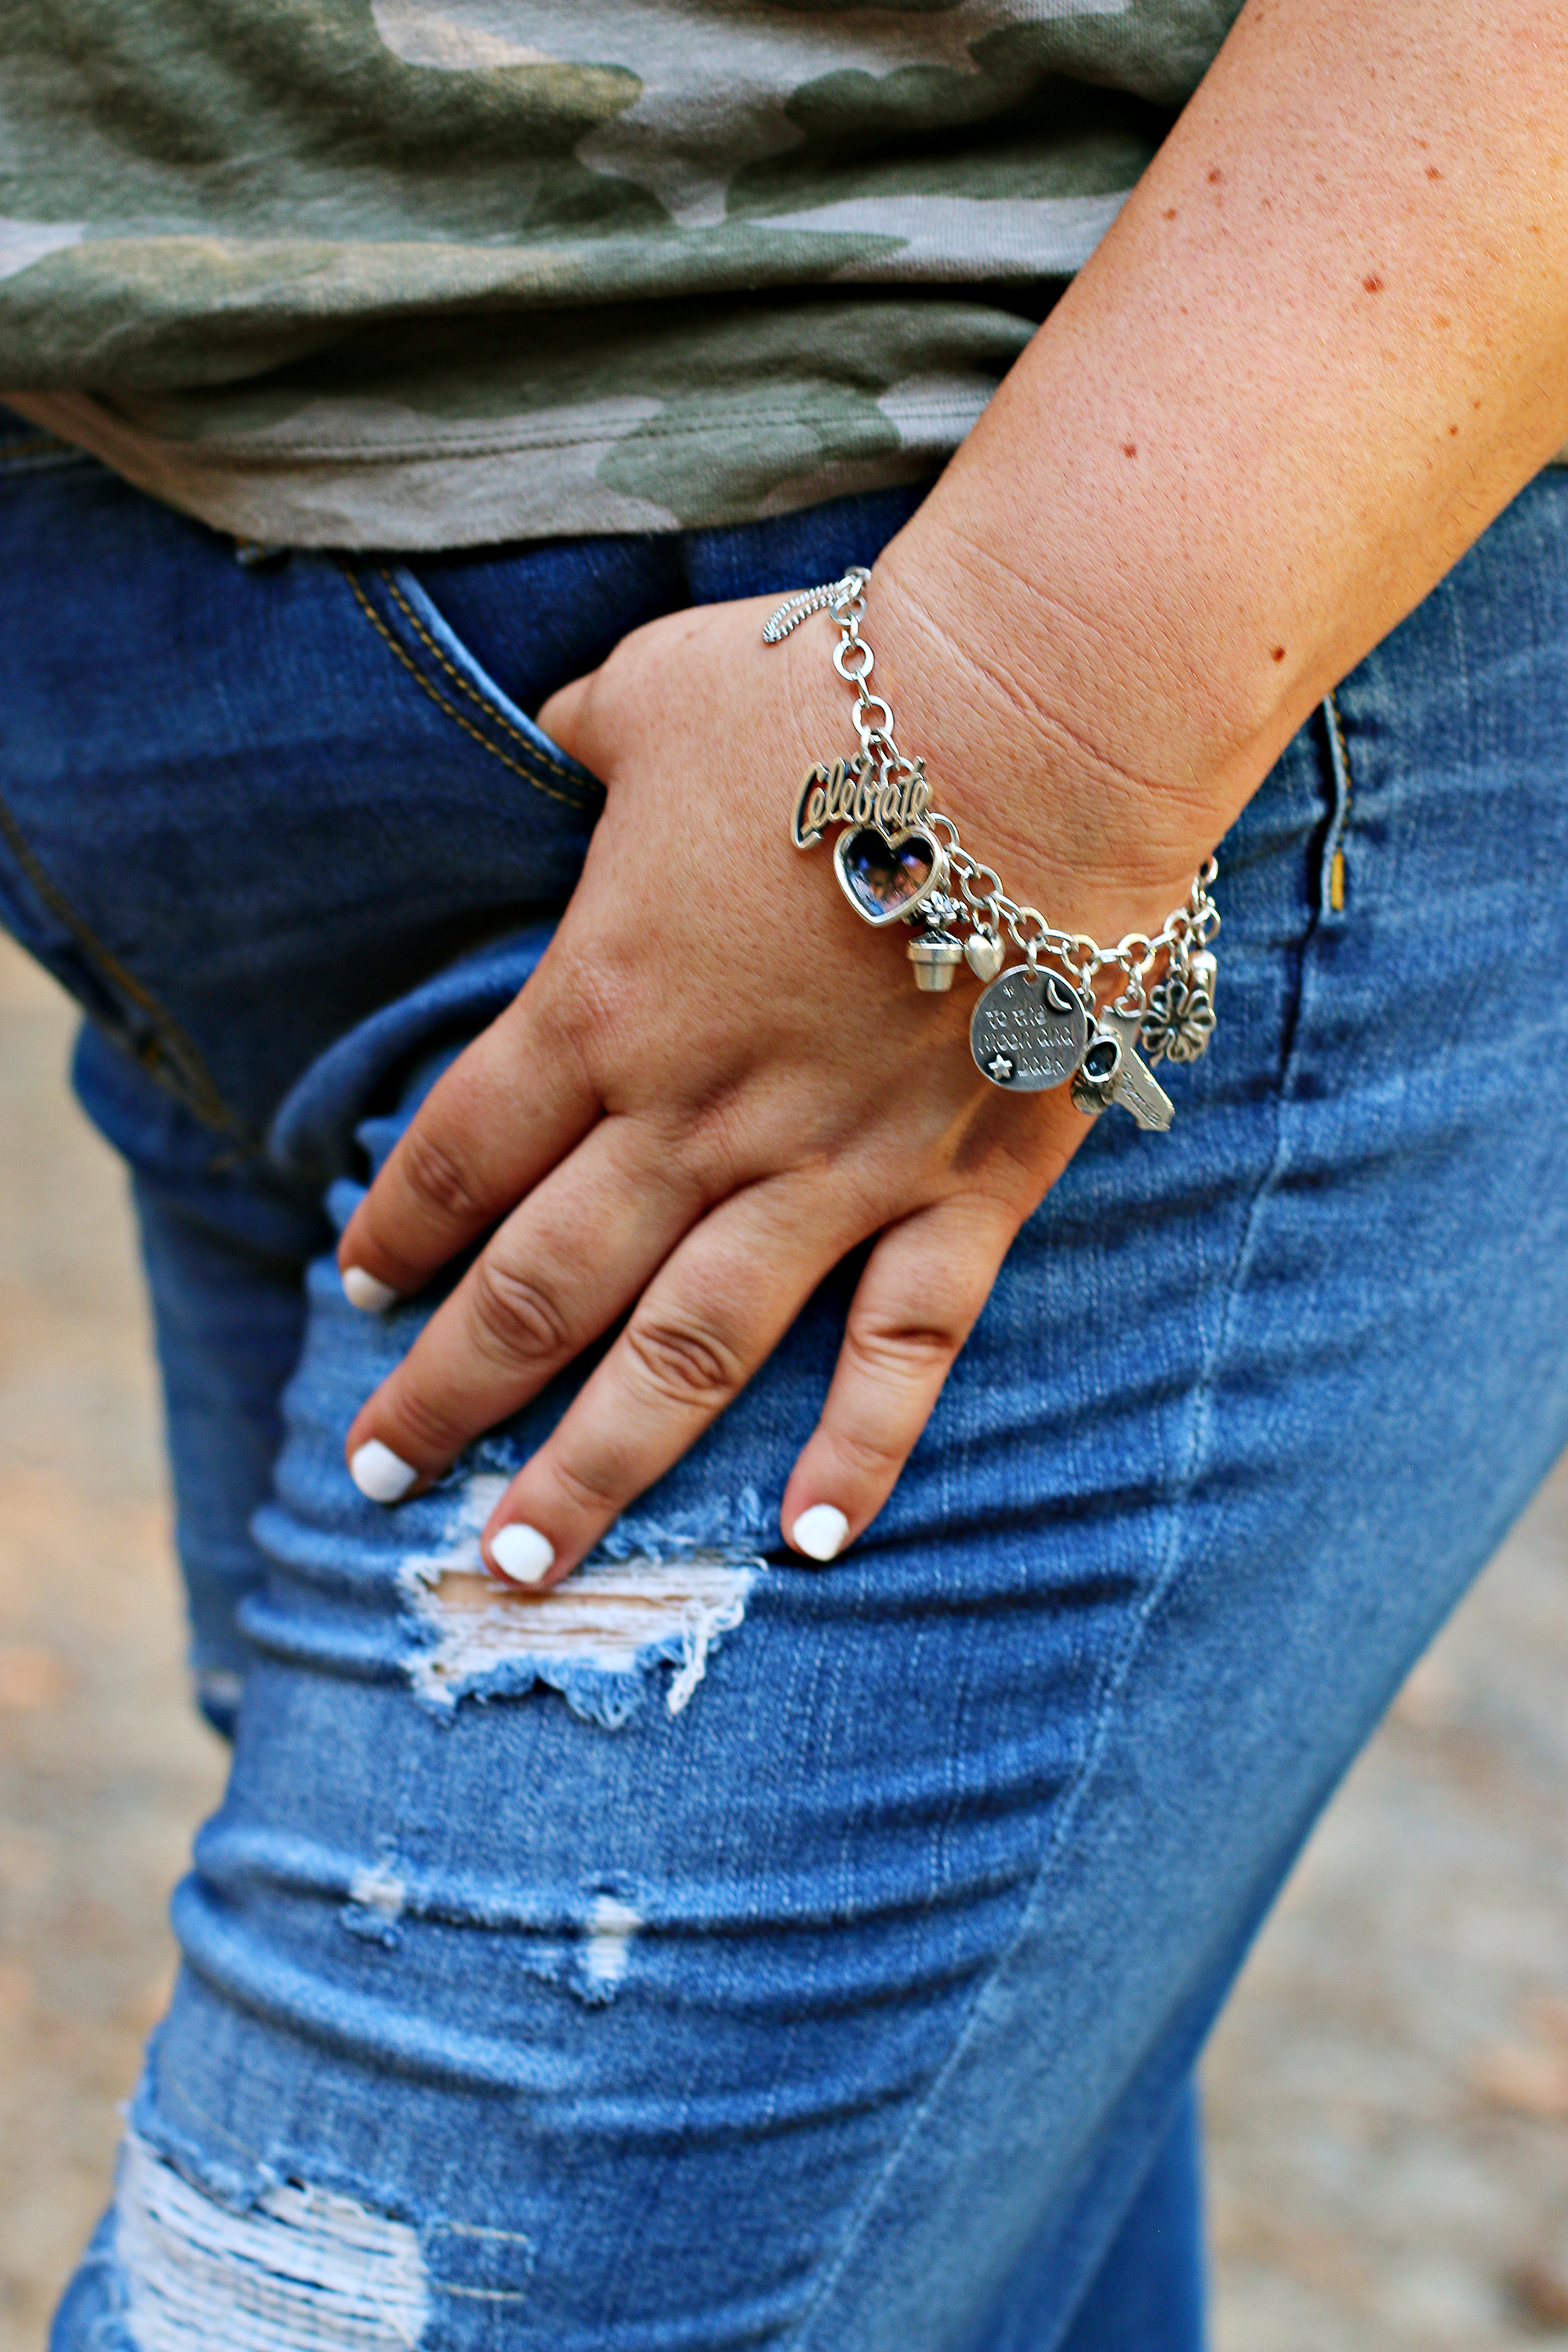 A close up of a woman showing her custom charm bracelet from James Avery Artisan Jewelry.